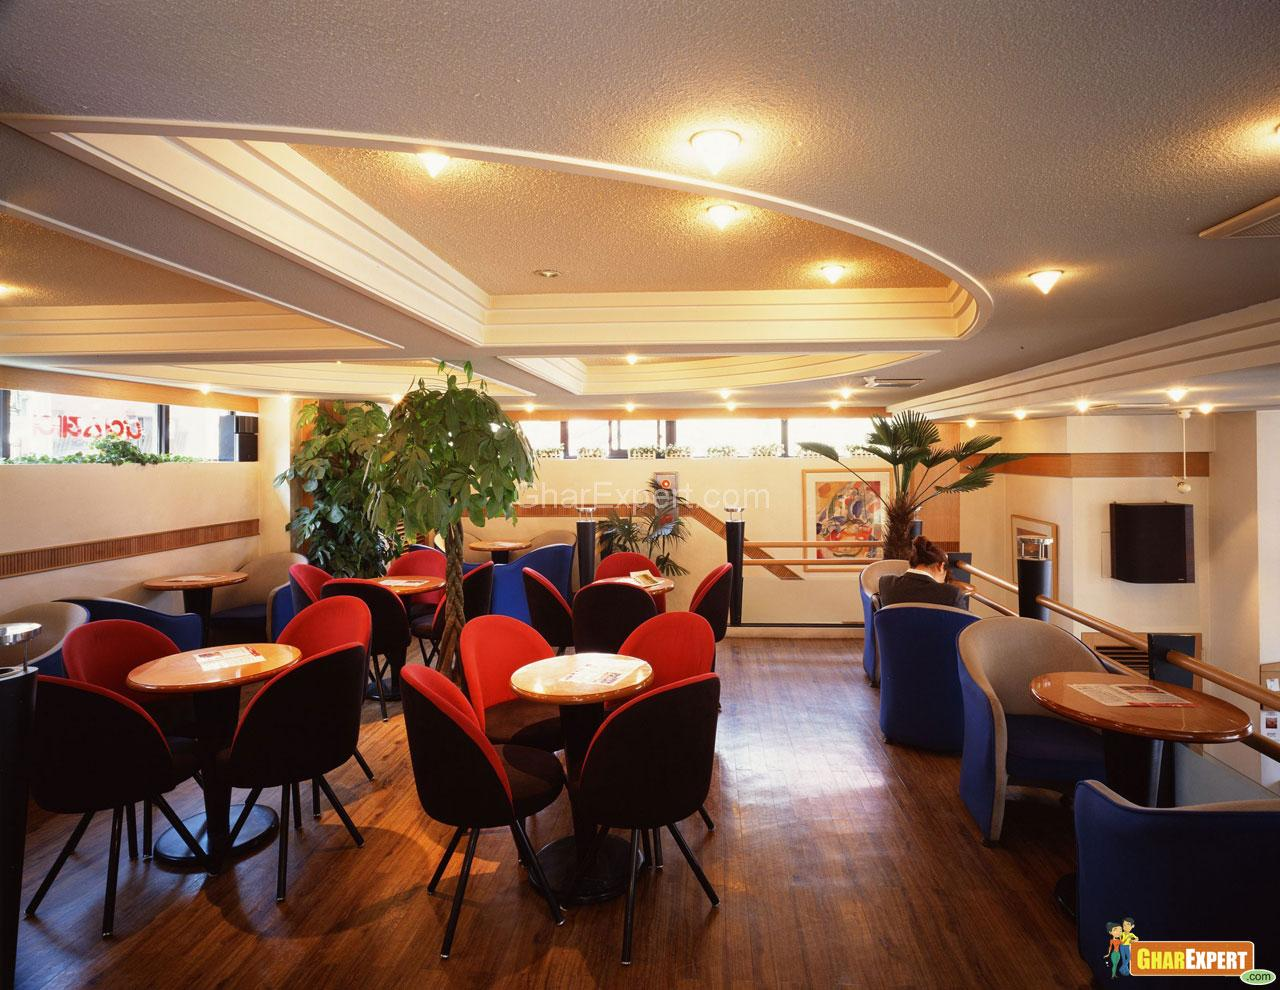 Ceiling Design In Restaurant Gharexpert